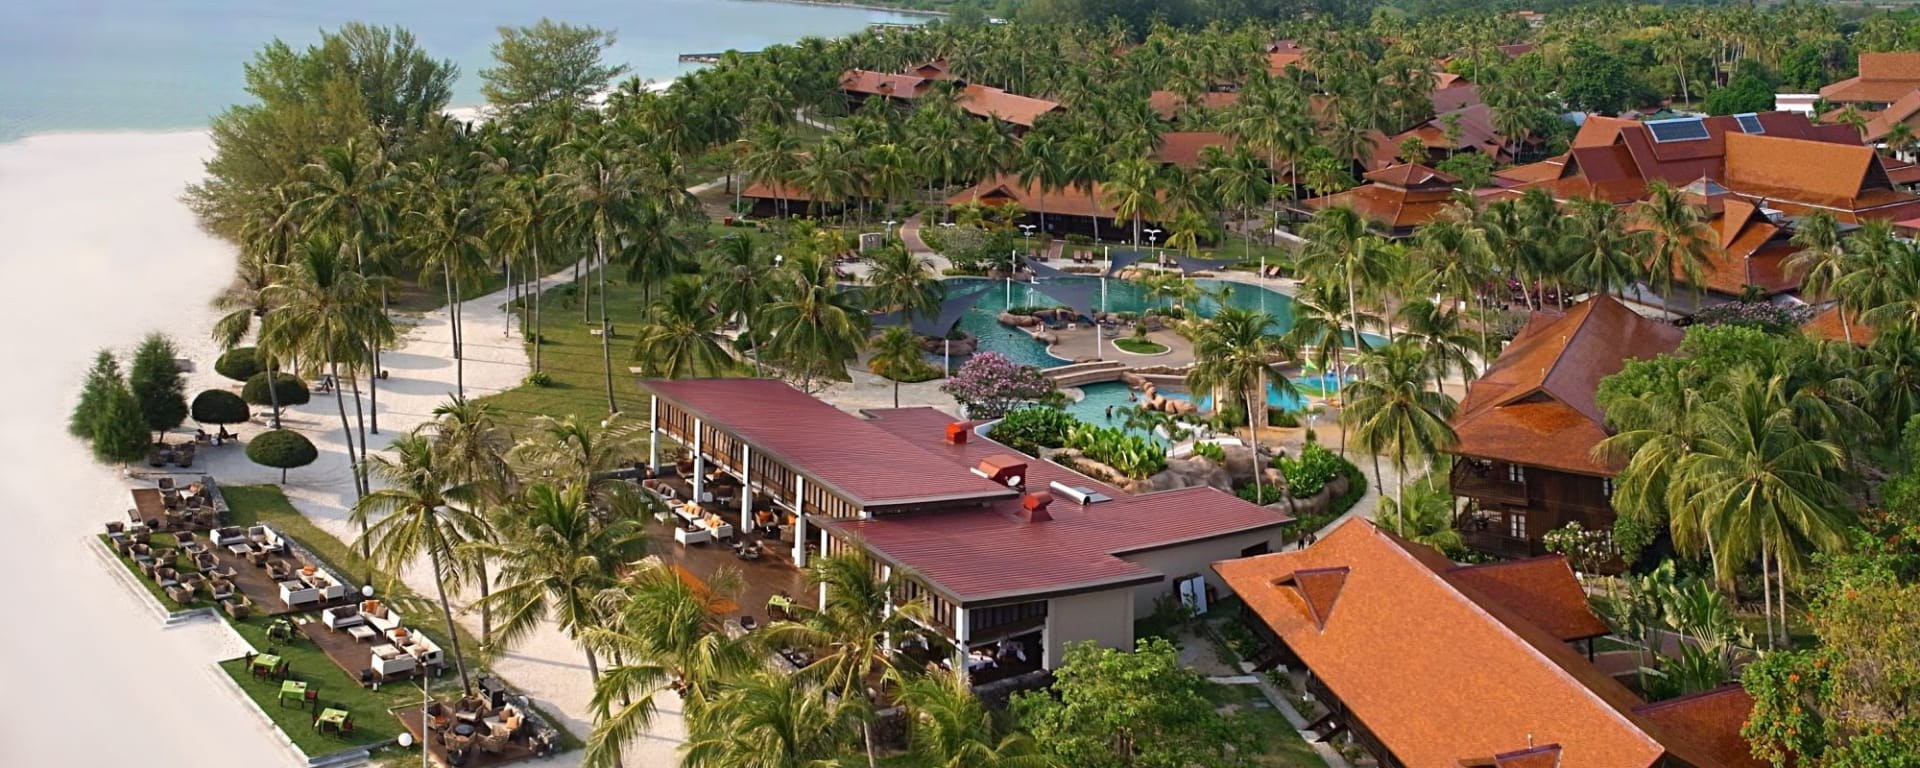 Pelangi Beach Resort & Spa à Langkawi: Aerial View